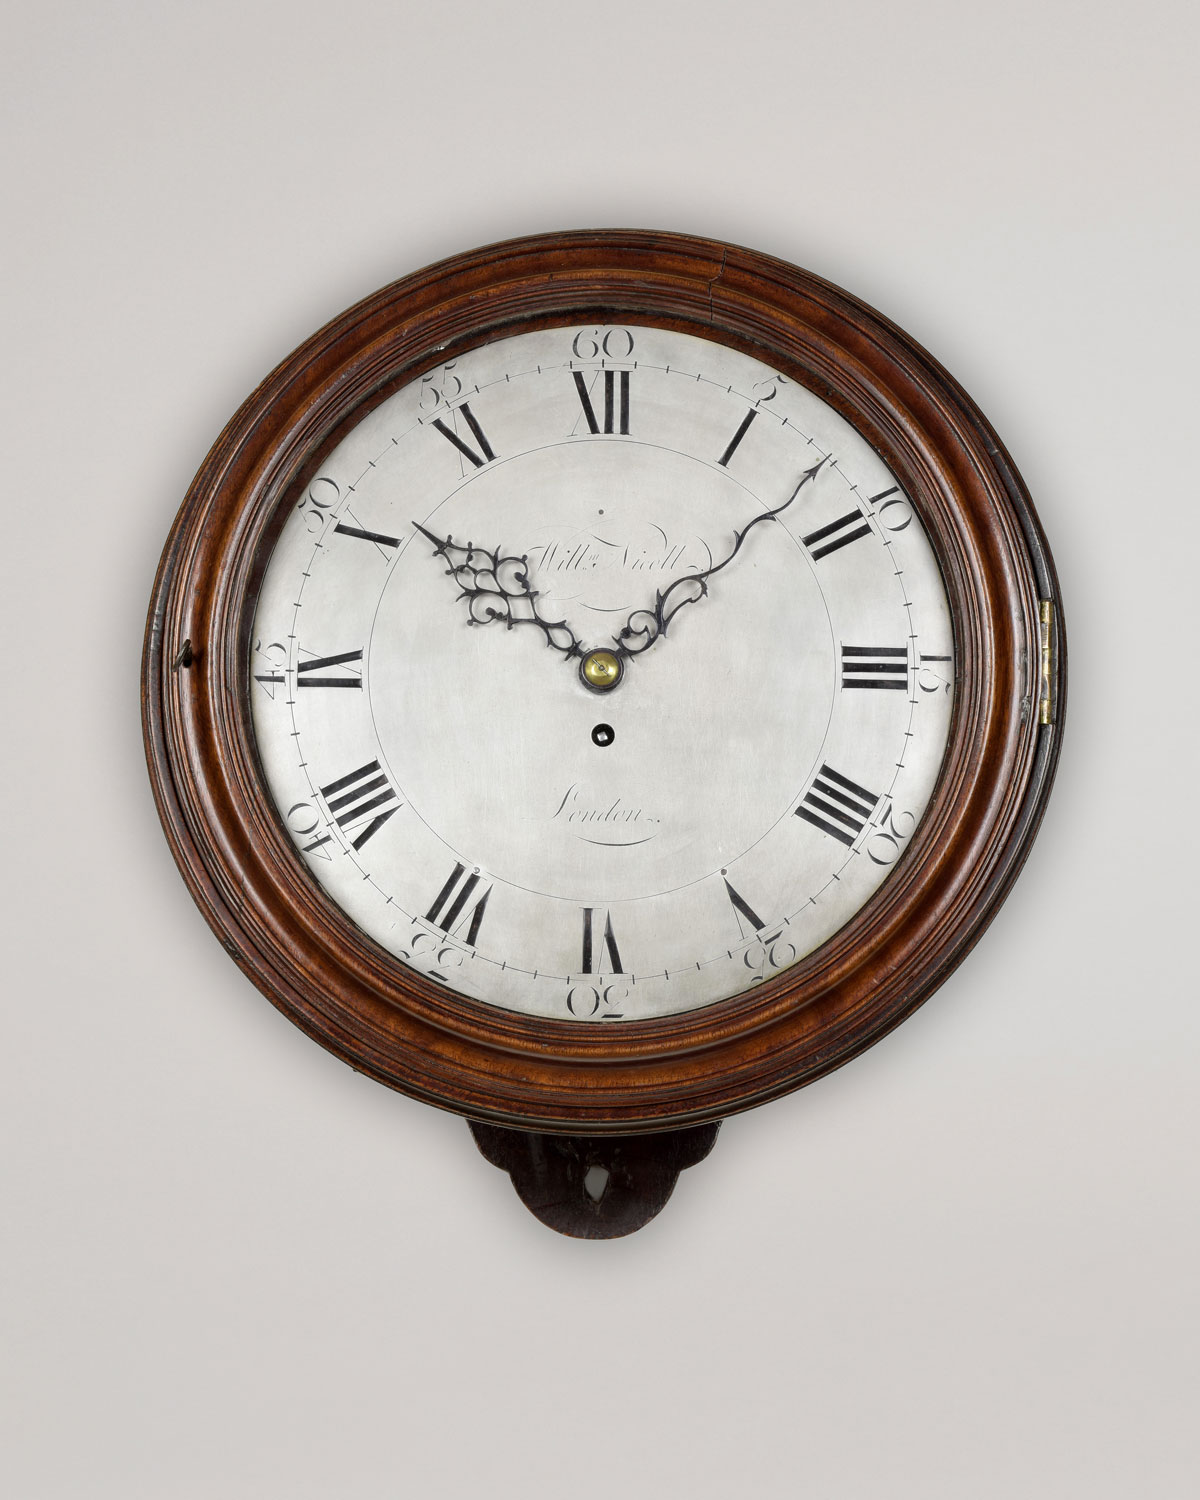 WILLIAM NICOLL. A George III period silvered dial timepiece